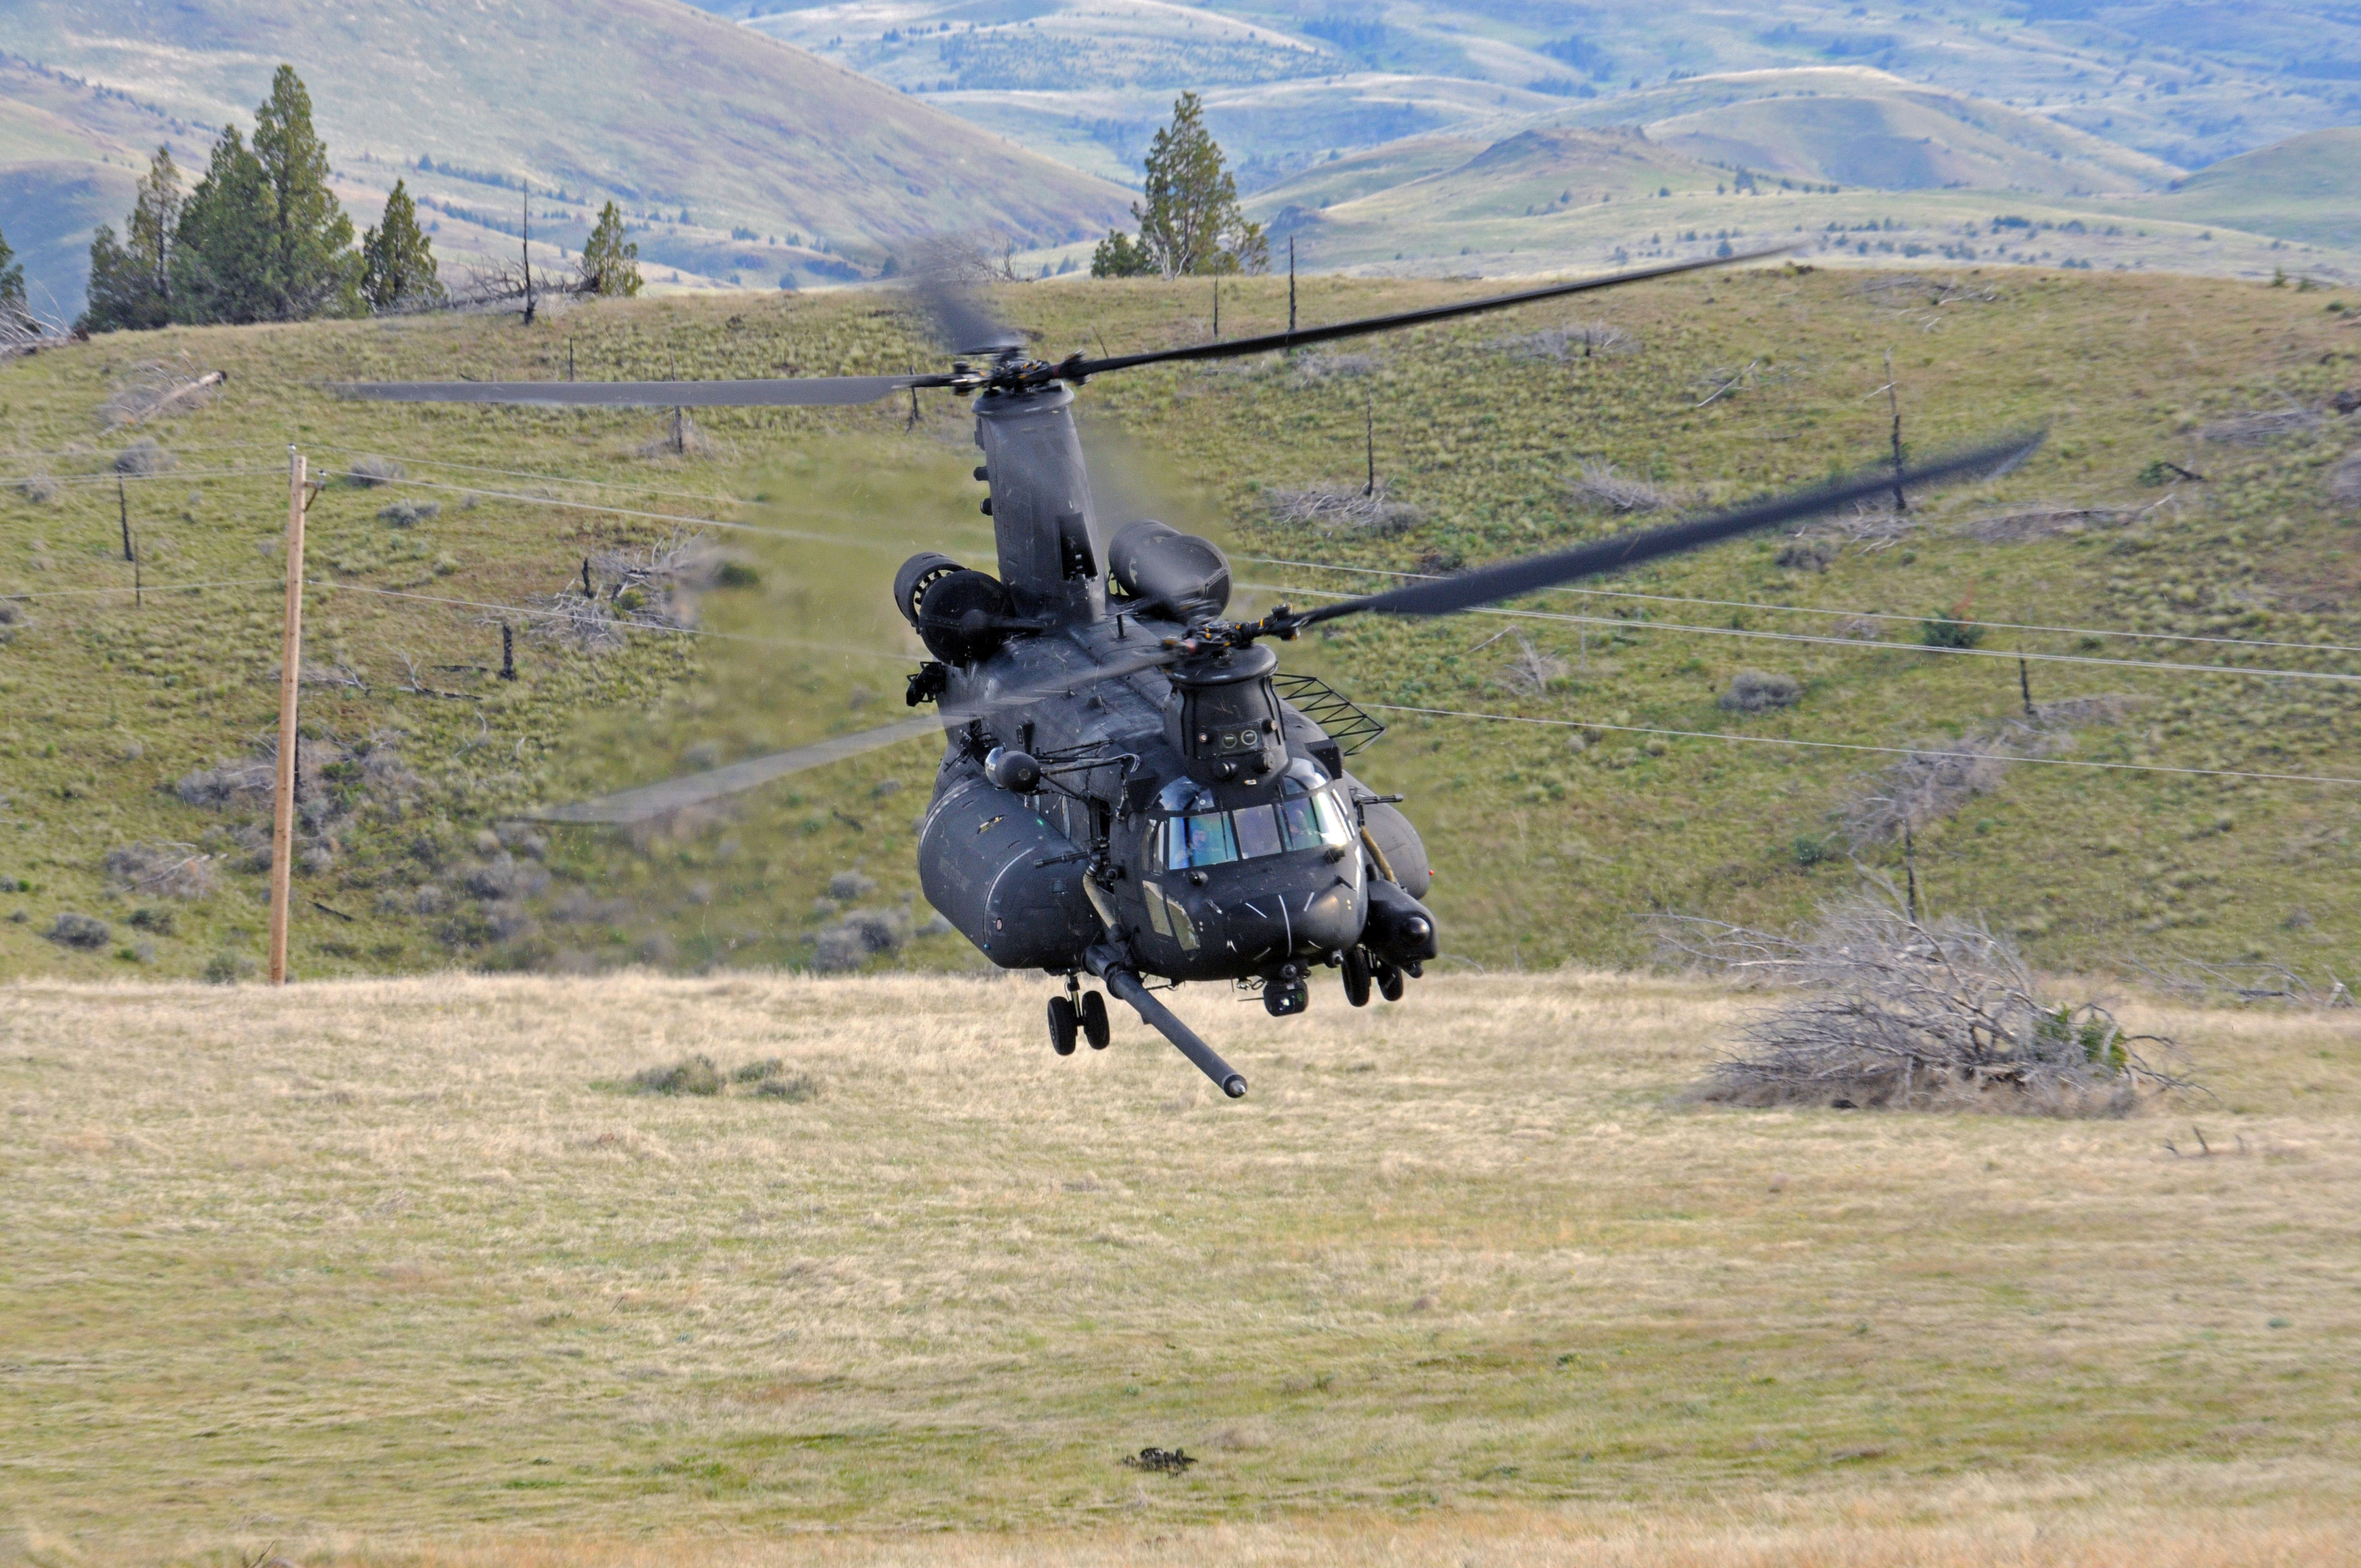 american helicopter with Chinook Soar on 716 together with The Us Army Has Terrifying Idea Turn Its Apache Helicopters 19408 moreover Military Images additionally H 60 Us Military Multi Generational likewise 507.